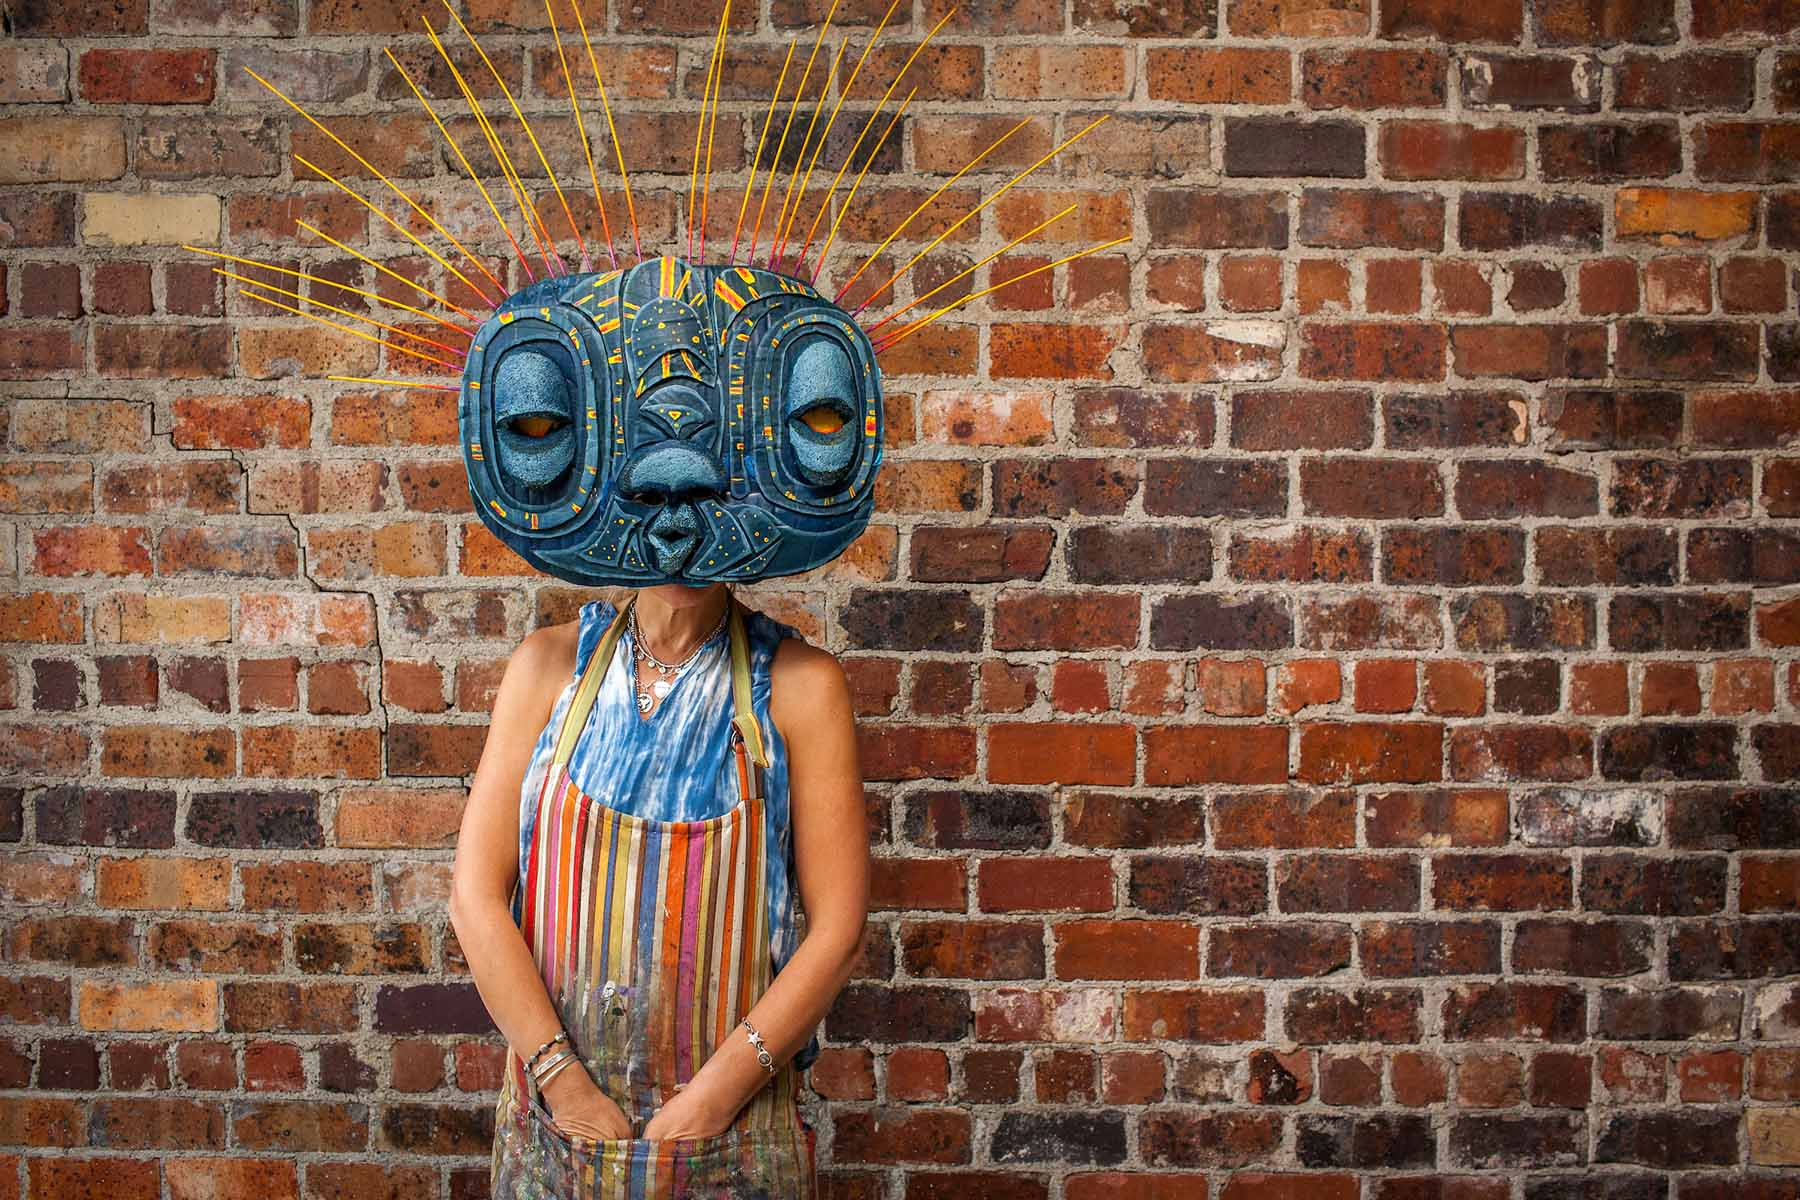 Wendy Minor Viny shows us a DIY halloween mask that can be made with cardboard, a pool noodle, a bike inner-tube, and some paint. Required tools for the job include scissors, a glue gun, and a stapler.